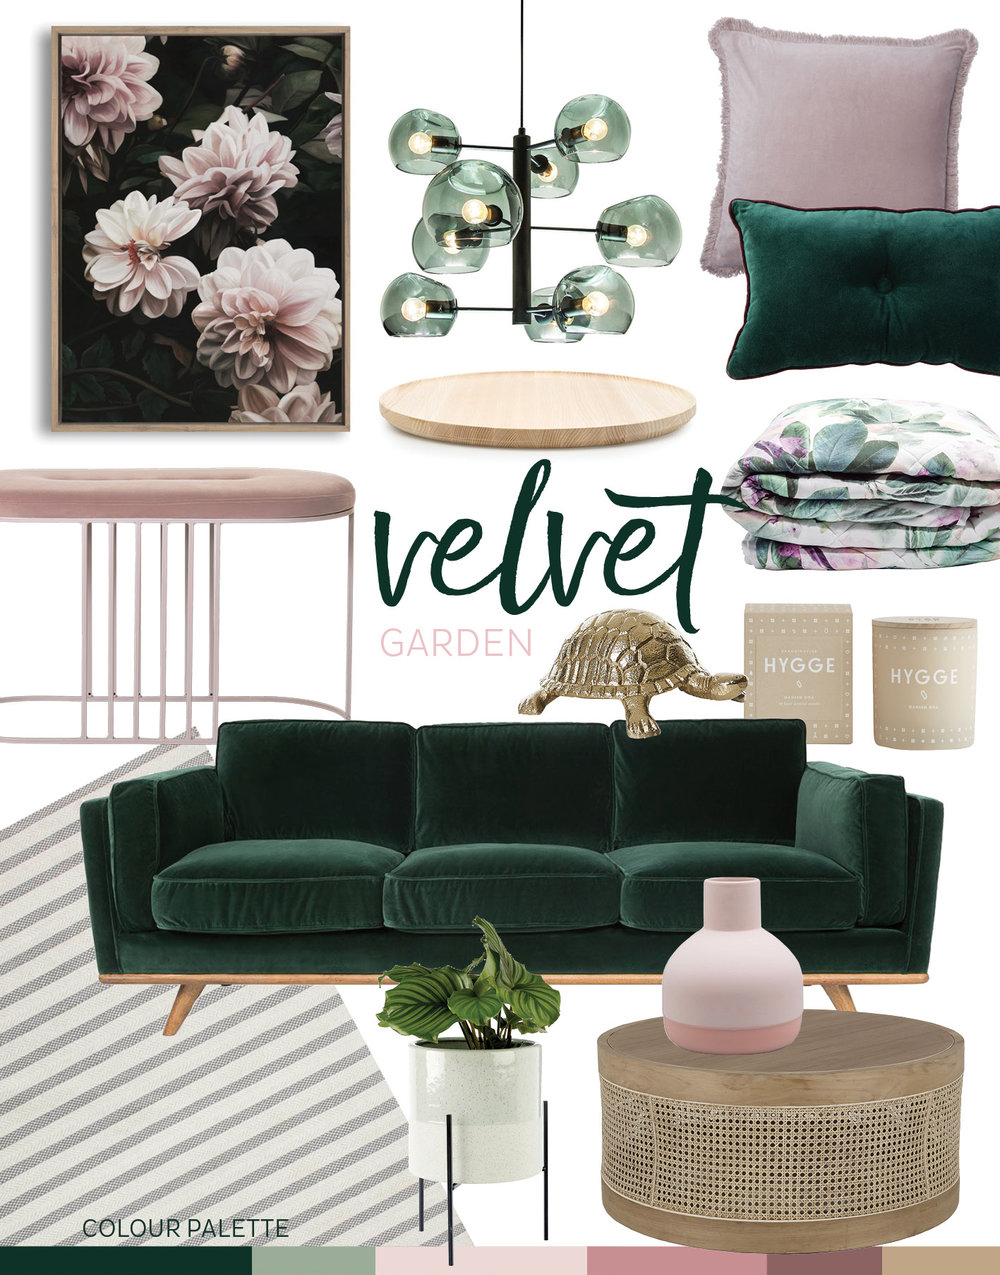 adore_home_magazine_blog_pink_green_trend_product_homewares_edit_forest_deep_rich_pretty_natural_blush_floral.jpg